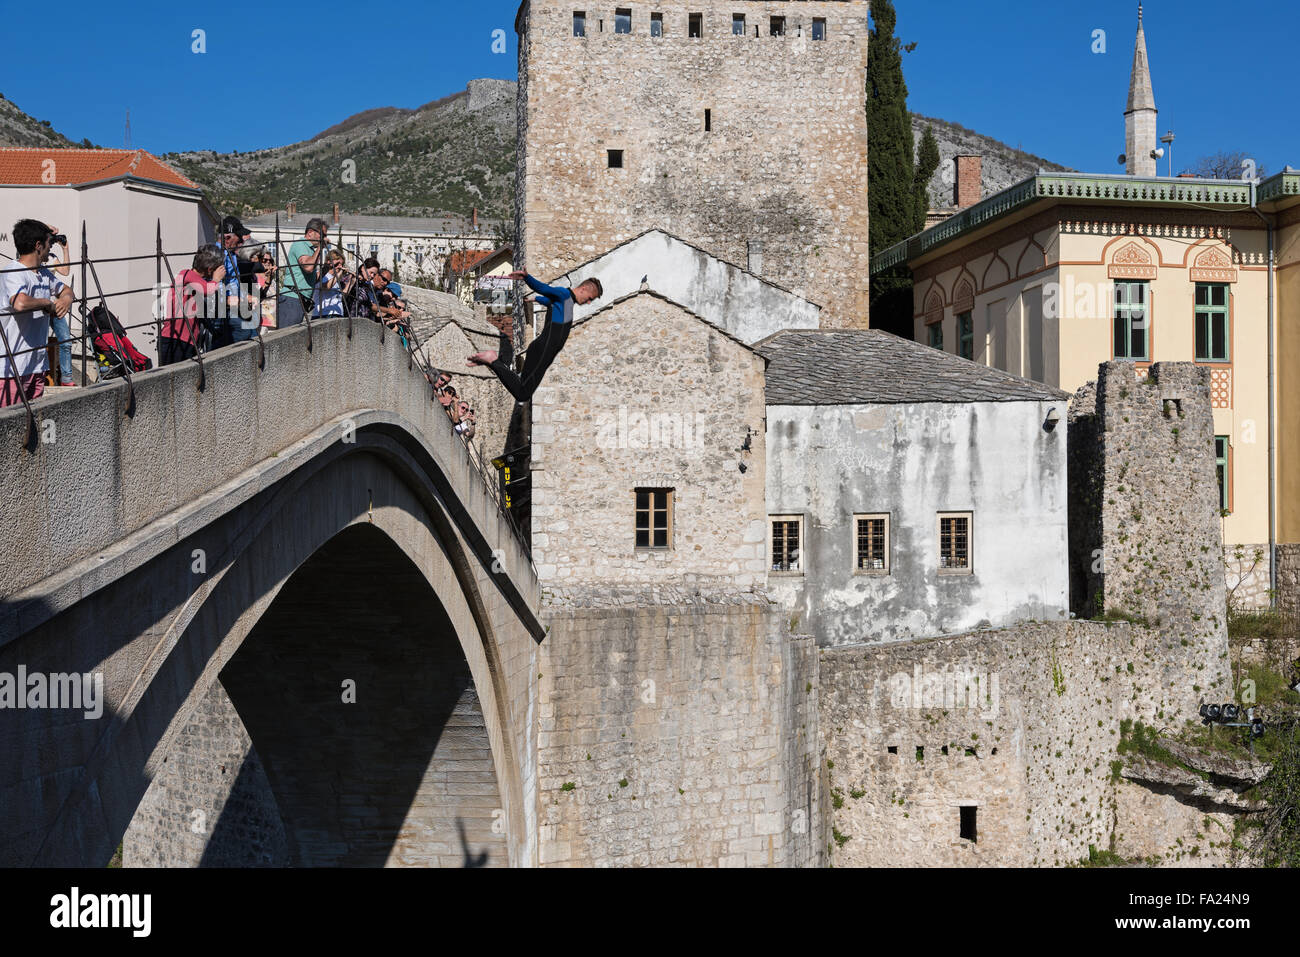 A young man dives from the Old Bridge to the river on April 15, 2015 in Mostar, Bosnia and Herzegovina. - Stock Image